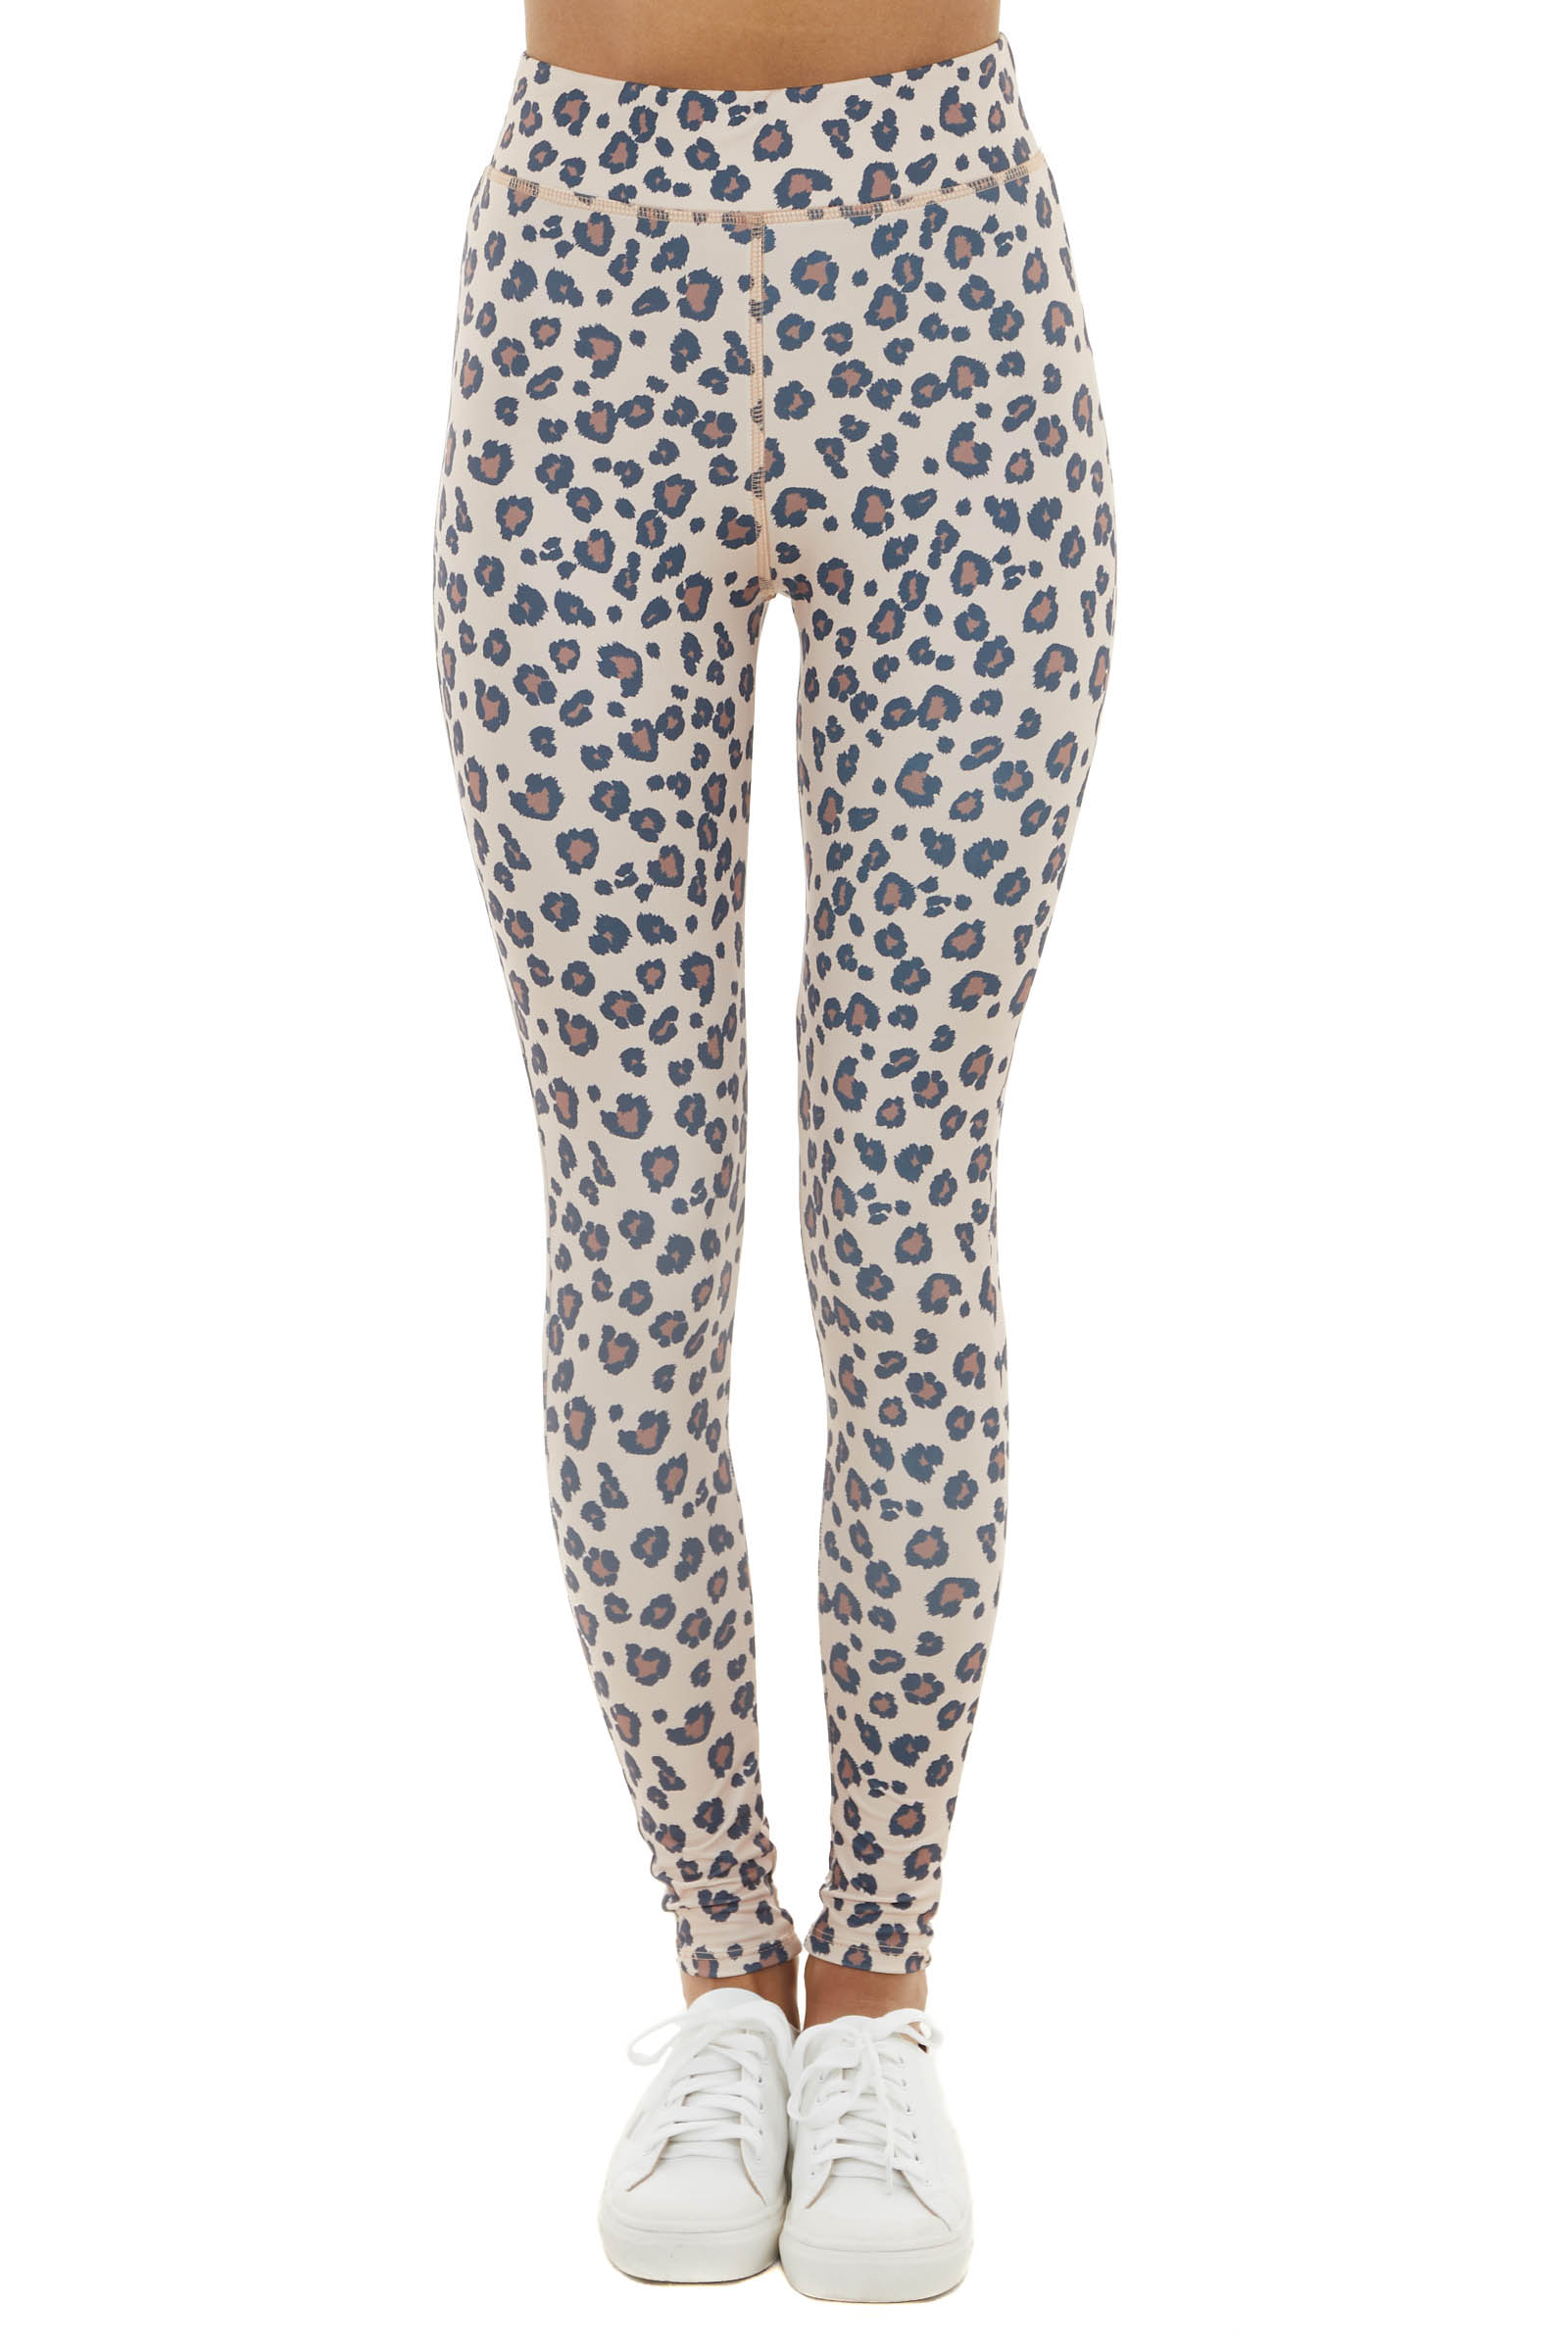 Rich Beige Leopard Print High Waisted Stretchy Leggings